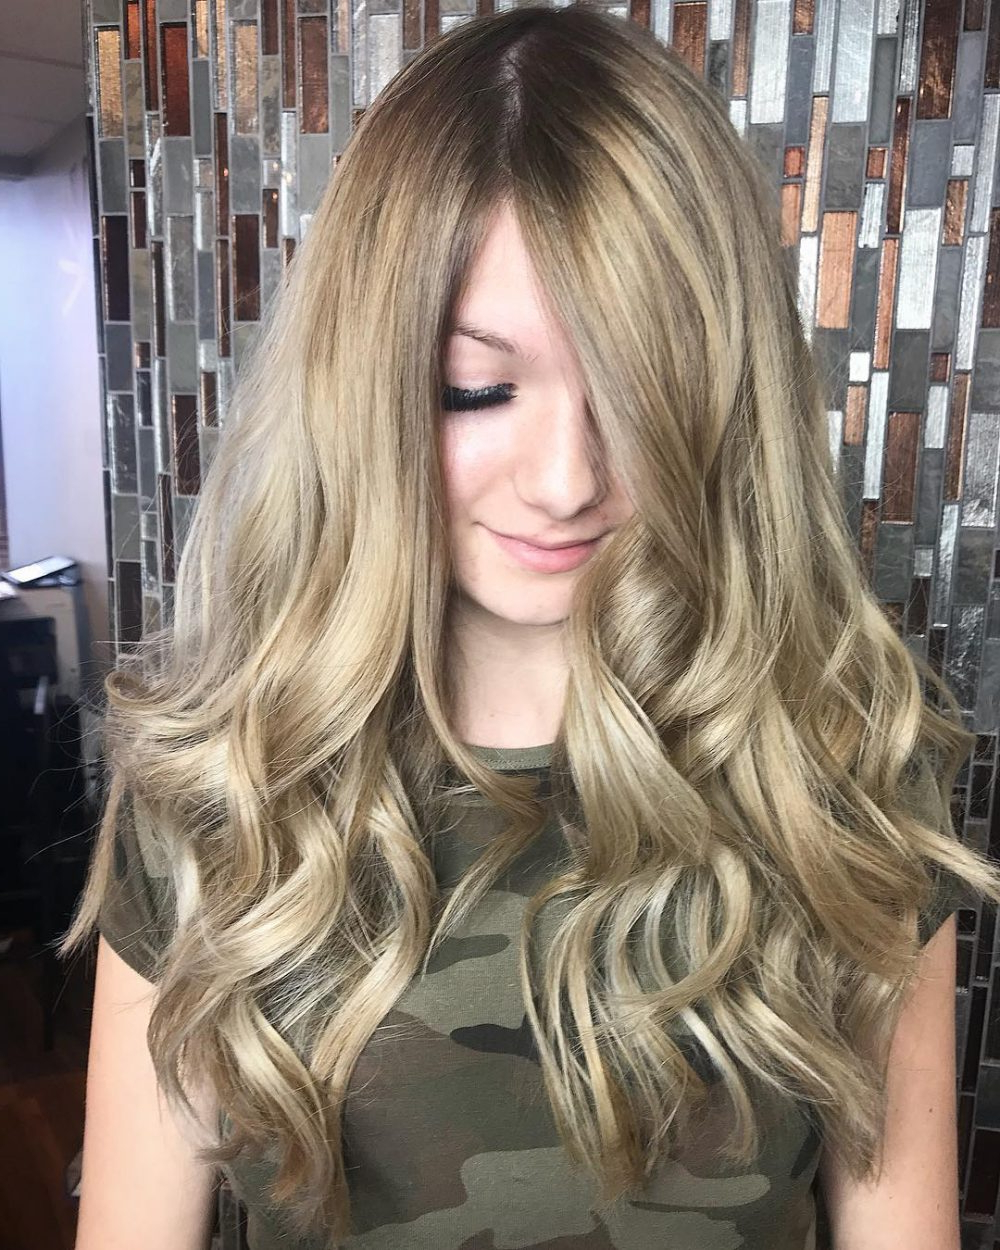 24 Long Wavy Hair Ideas That Are Freaking Hot In 2019 Intended For Most Popular Long Tousled Voluminous Hairstyles (Gallery 2 of 20)